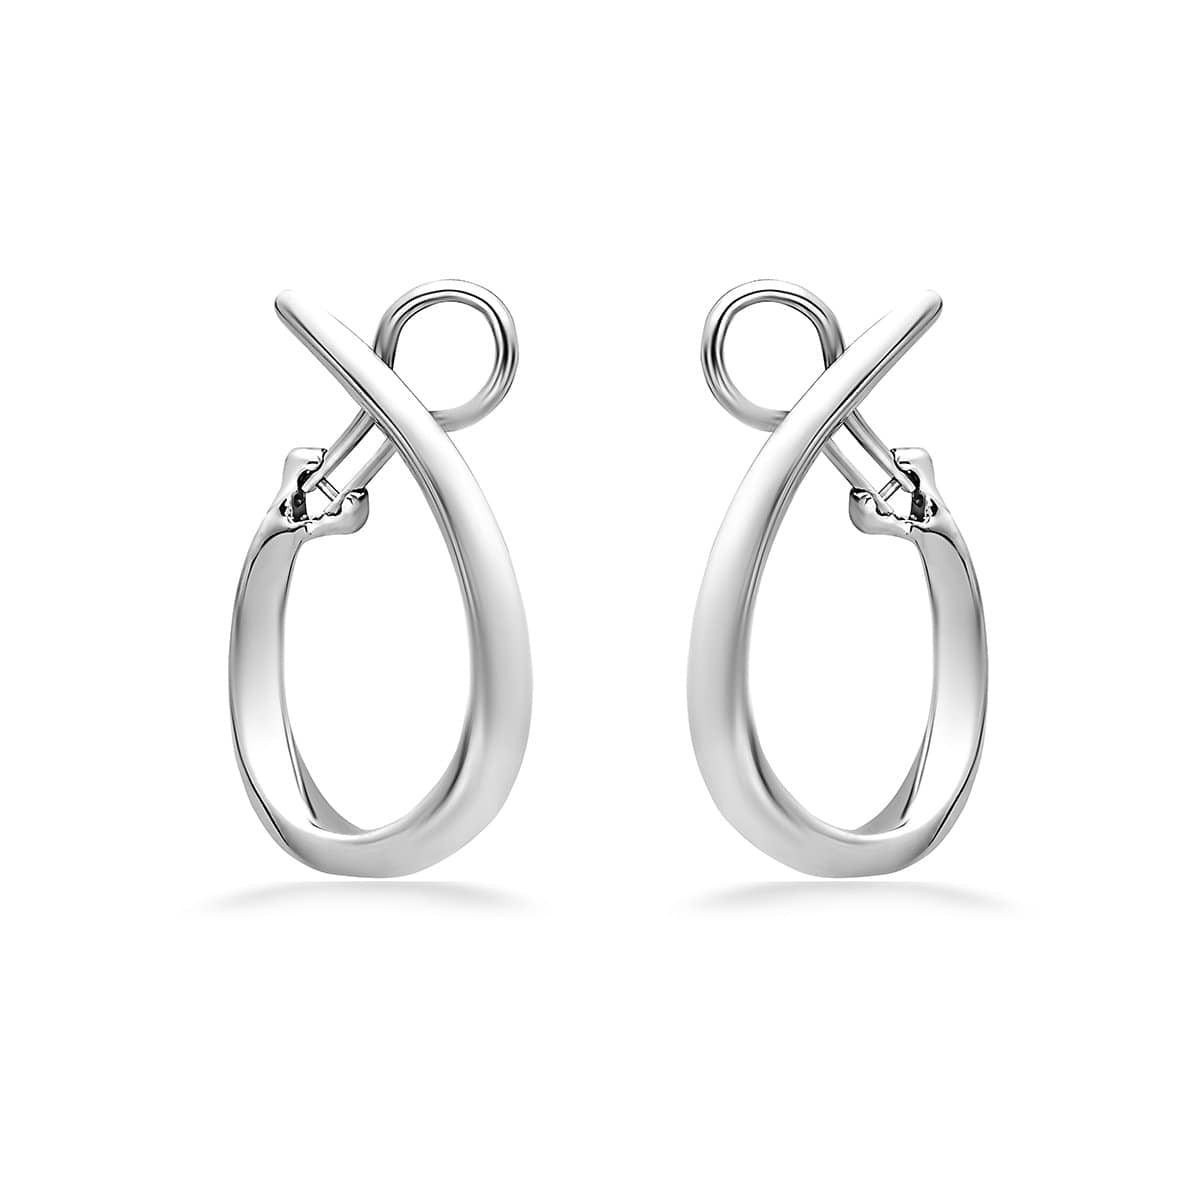 14K White Gold & Sterling Silver 33MM Hoop Earrings